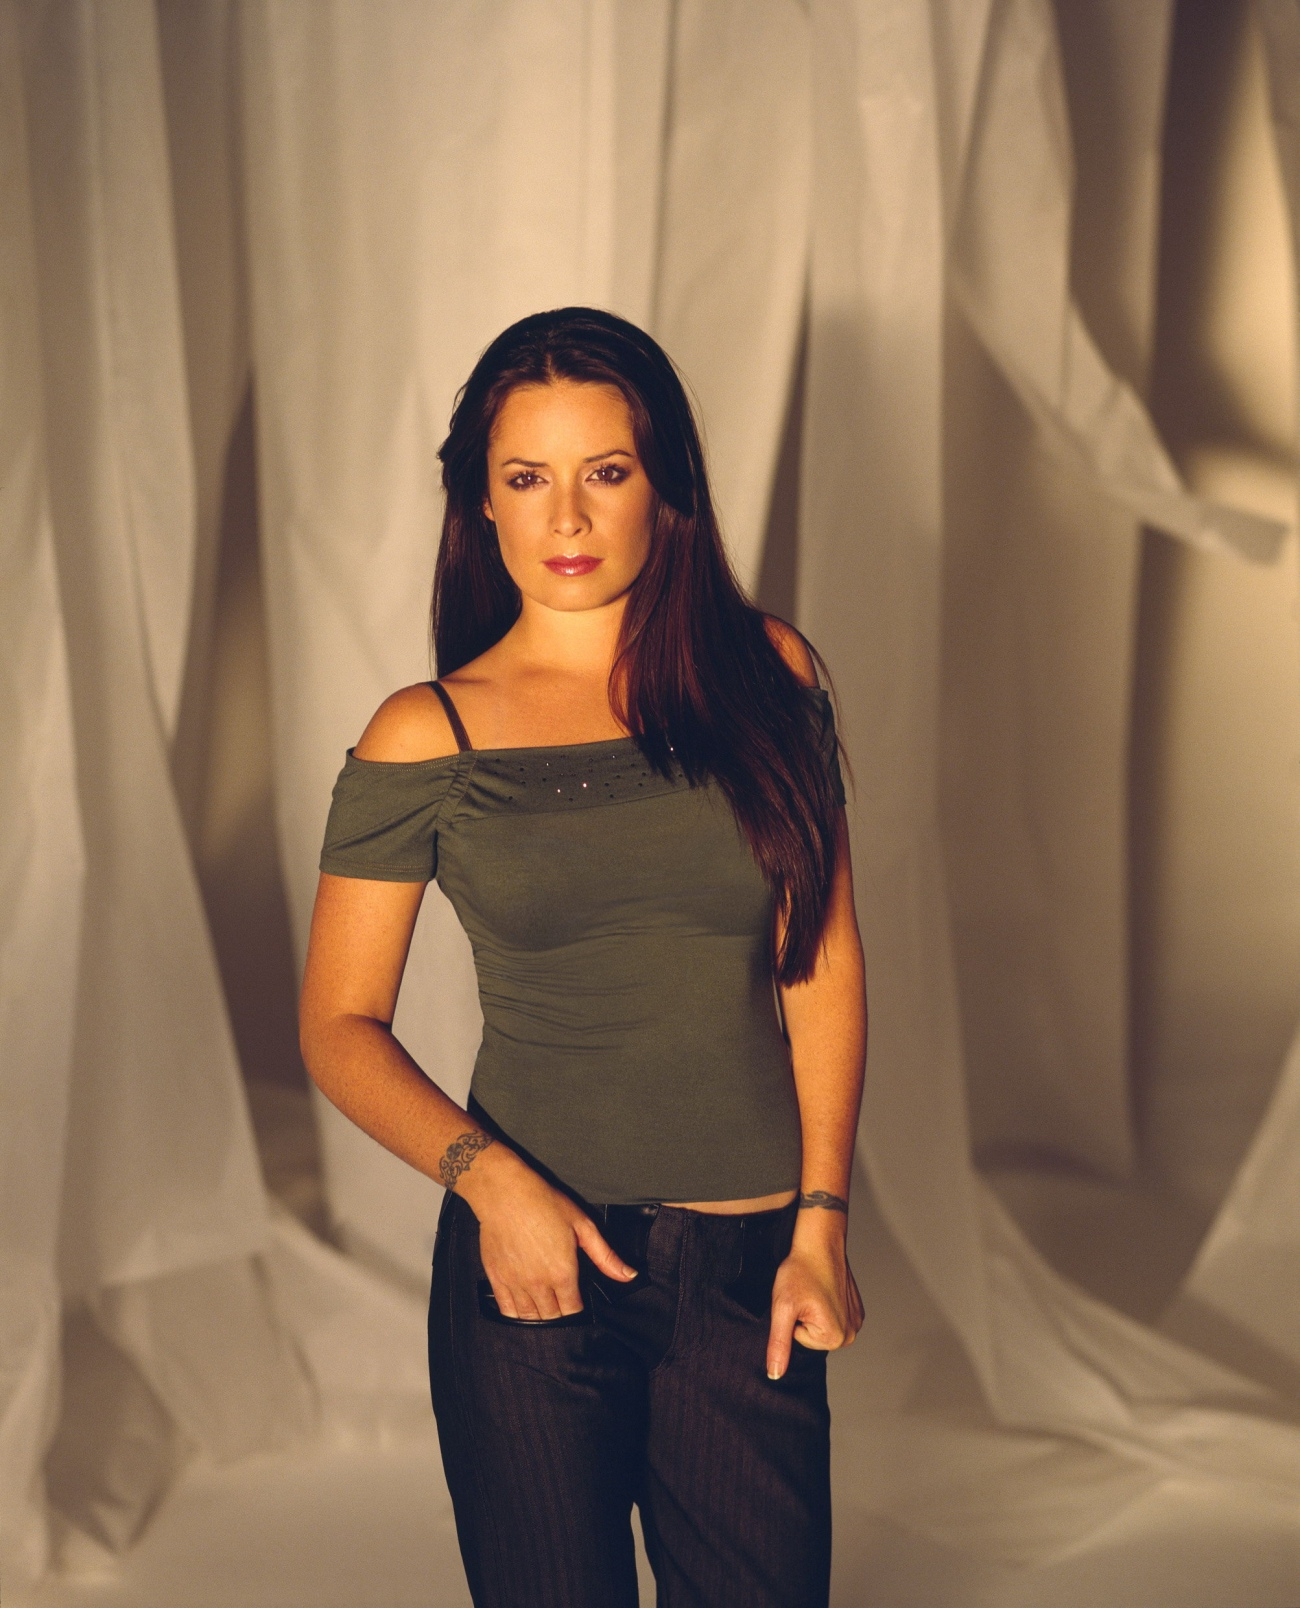 holly marie combs facebookholly marie combs 2016, holly marie combs 2017, holly marie combs and shannen doherty, holly marie combs pretty little liars, holly marie combs charmed, holly marie combs 2015, holly marie combs as piper credits, holly marie combs net worth, holly marie combs young, holly marie combs vk, holly marie combs site, holly marie combs husband, holly marie combs vegan, holly marie combs fansite, holly marie combs and shannen doherty cancer, holly marie combs instagram, holly marie combs dates, holly marie combs facebook, holly marie combs wiki, holly marie combs insta